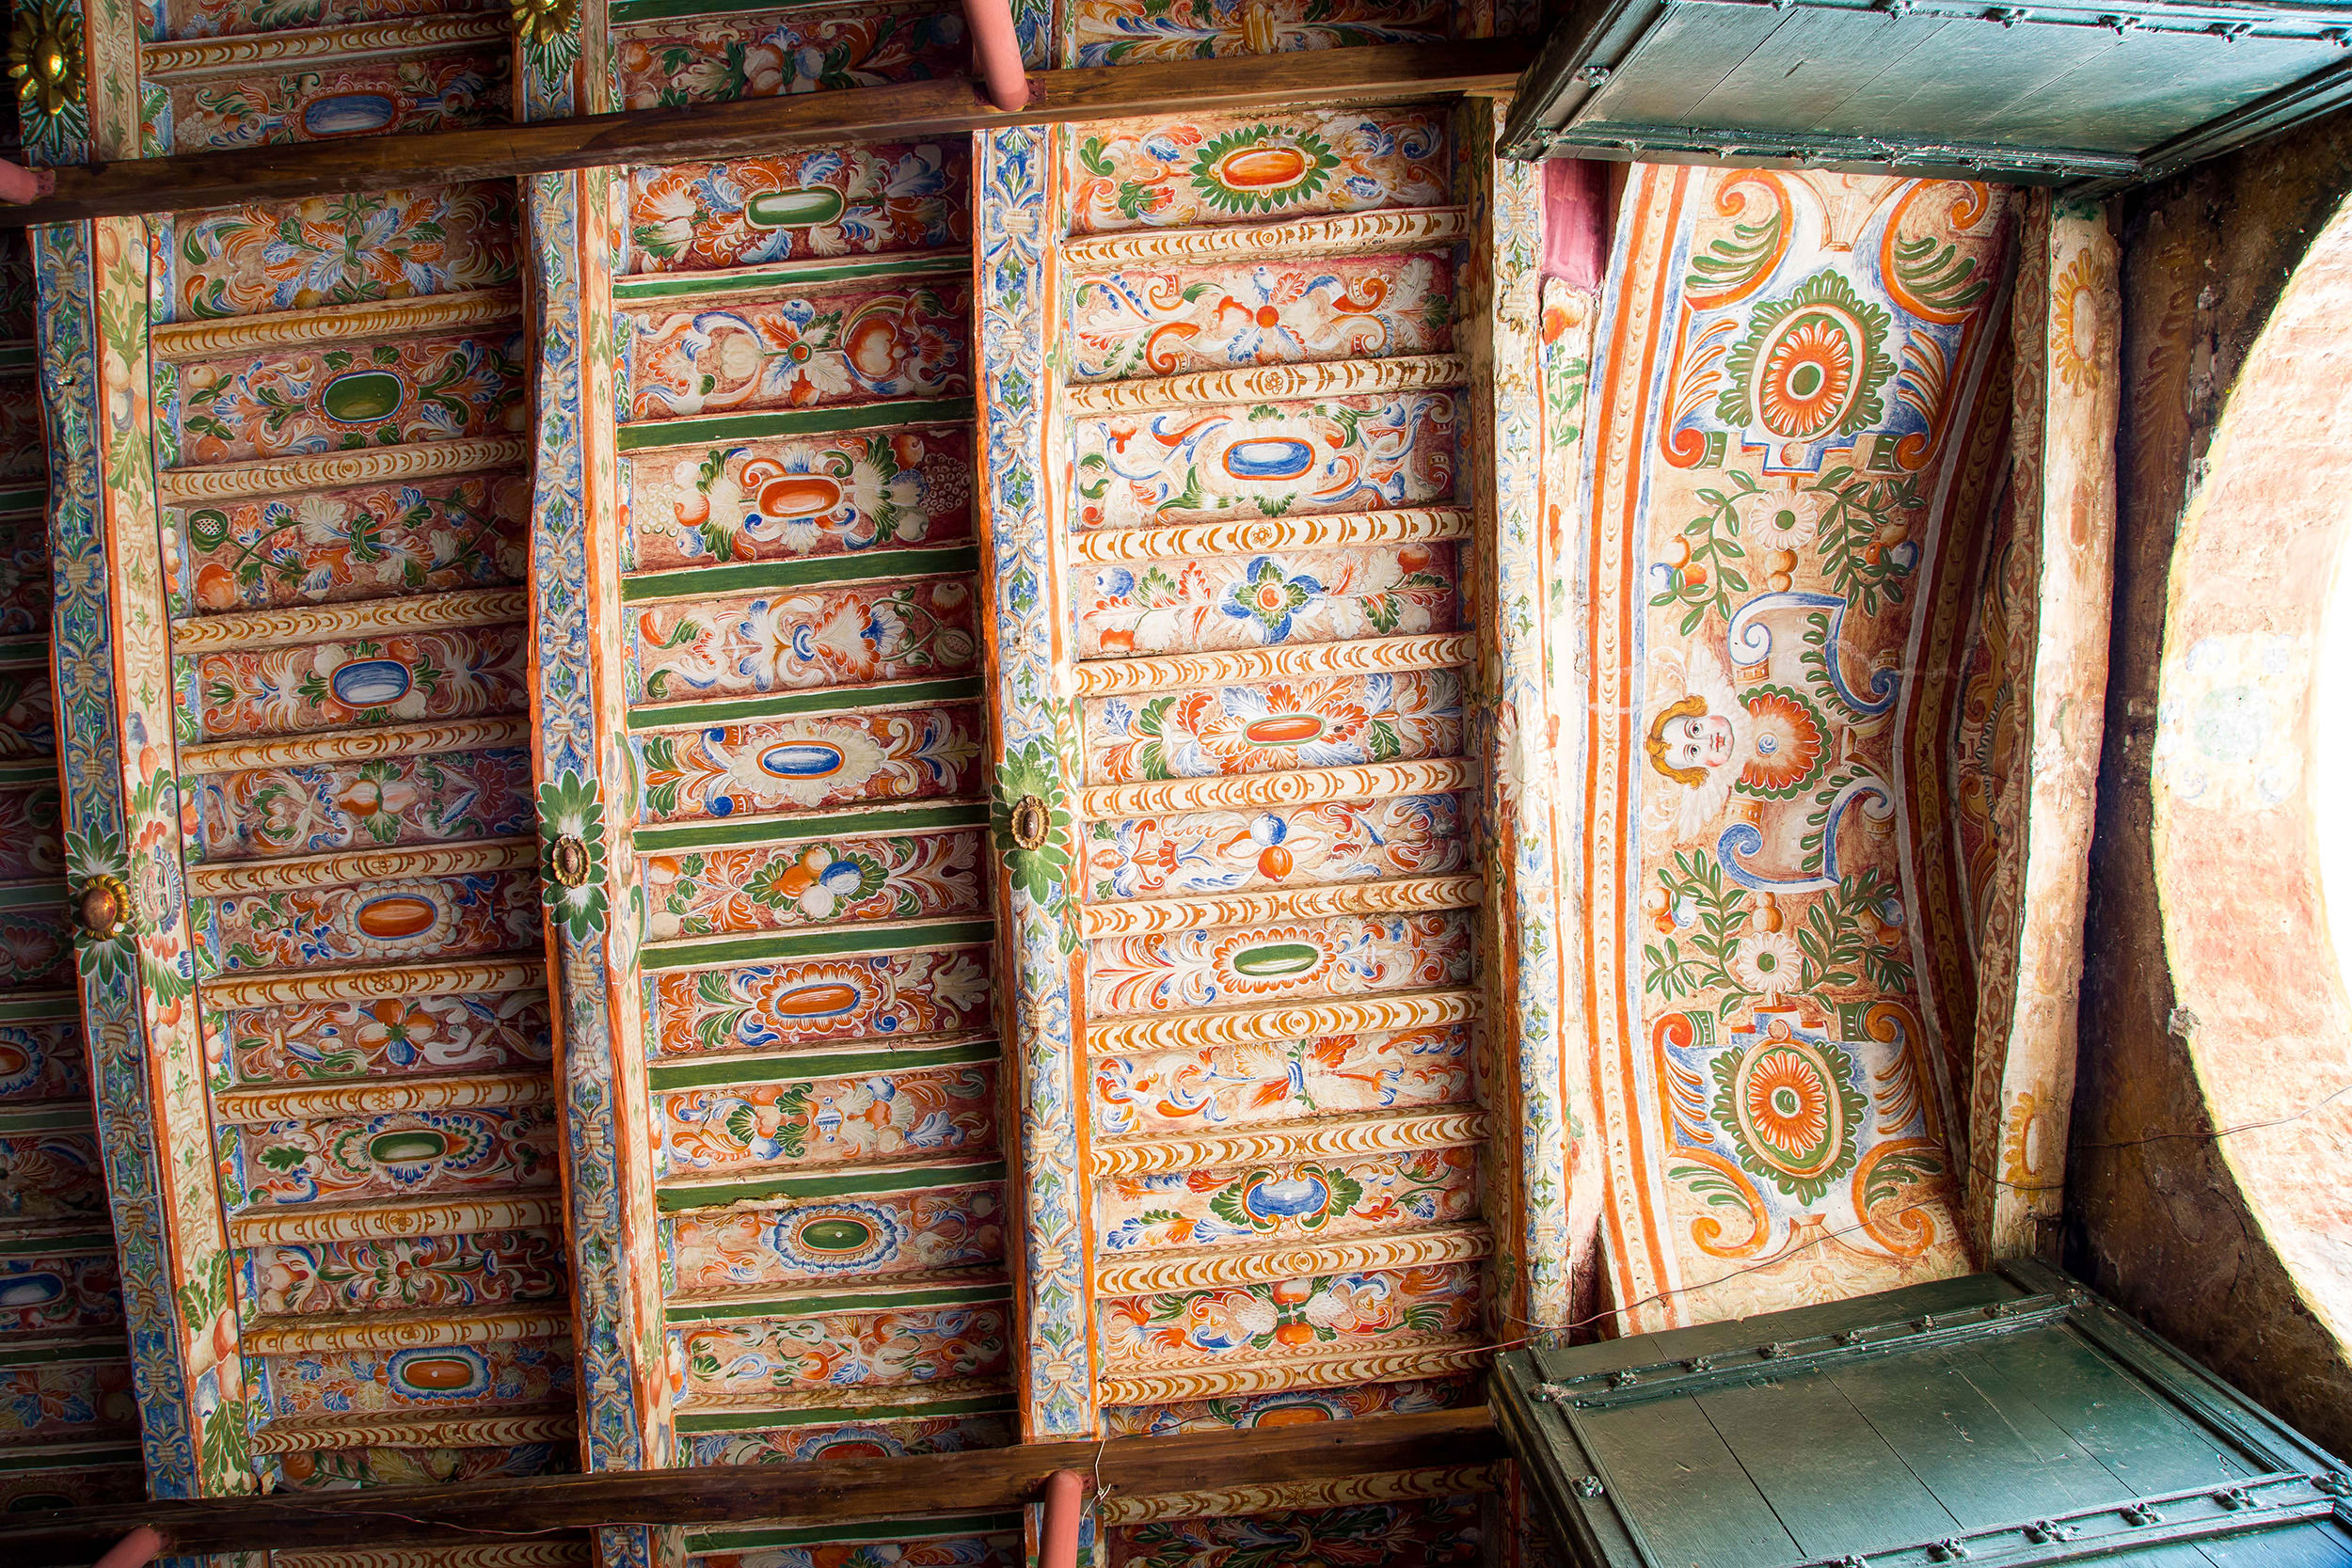 Fig. 9 Painted ceiling below the choir loft with floral and vegetal designs, Church of Checacupe, Canchis Province, 17th century. Photo by Raúl Montero Quispe.